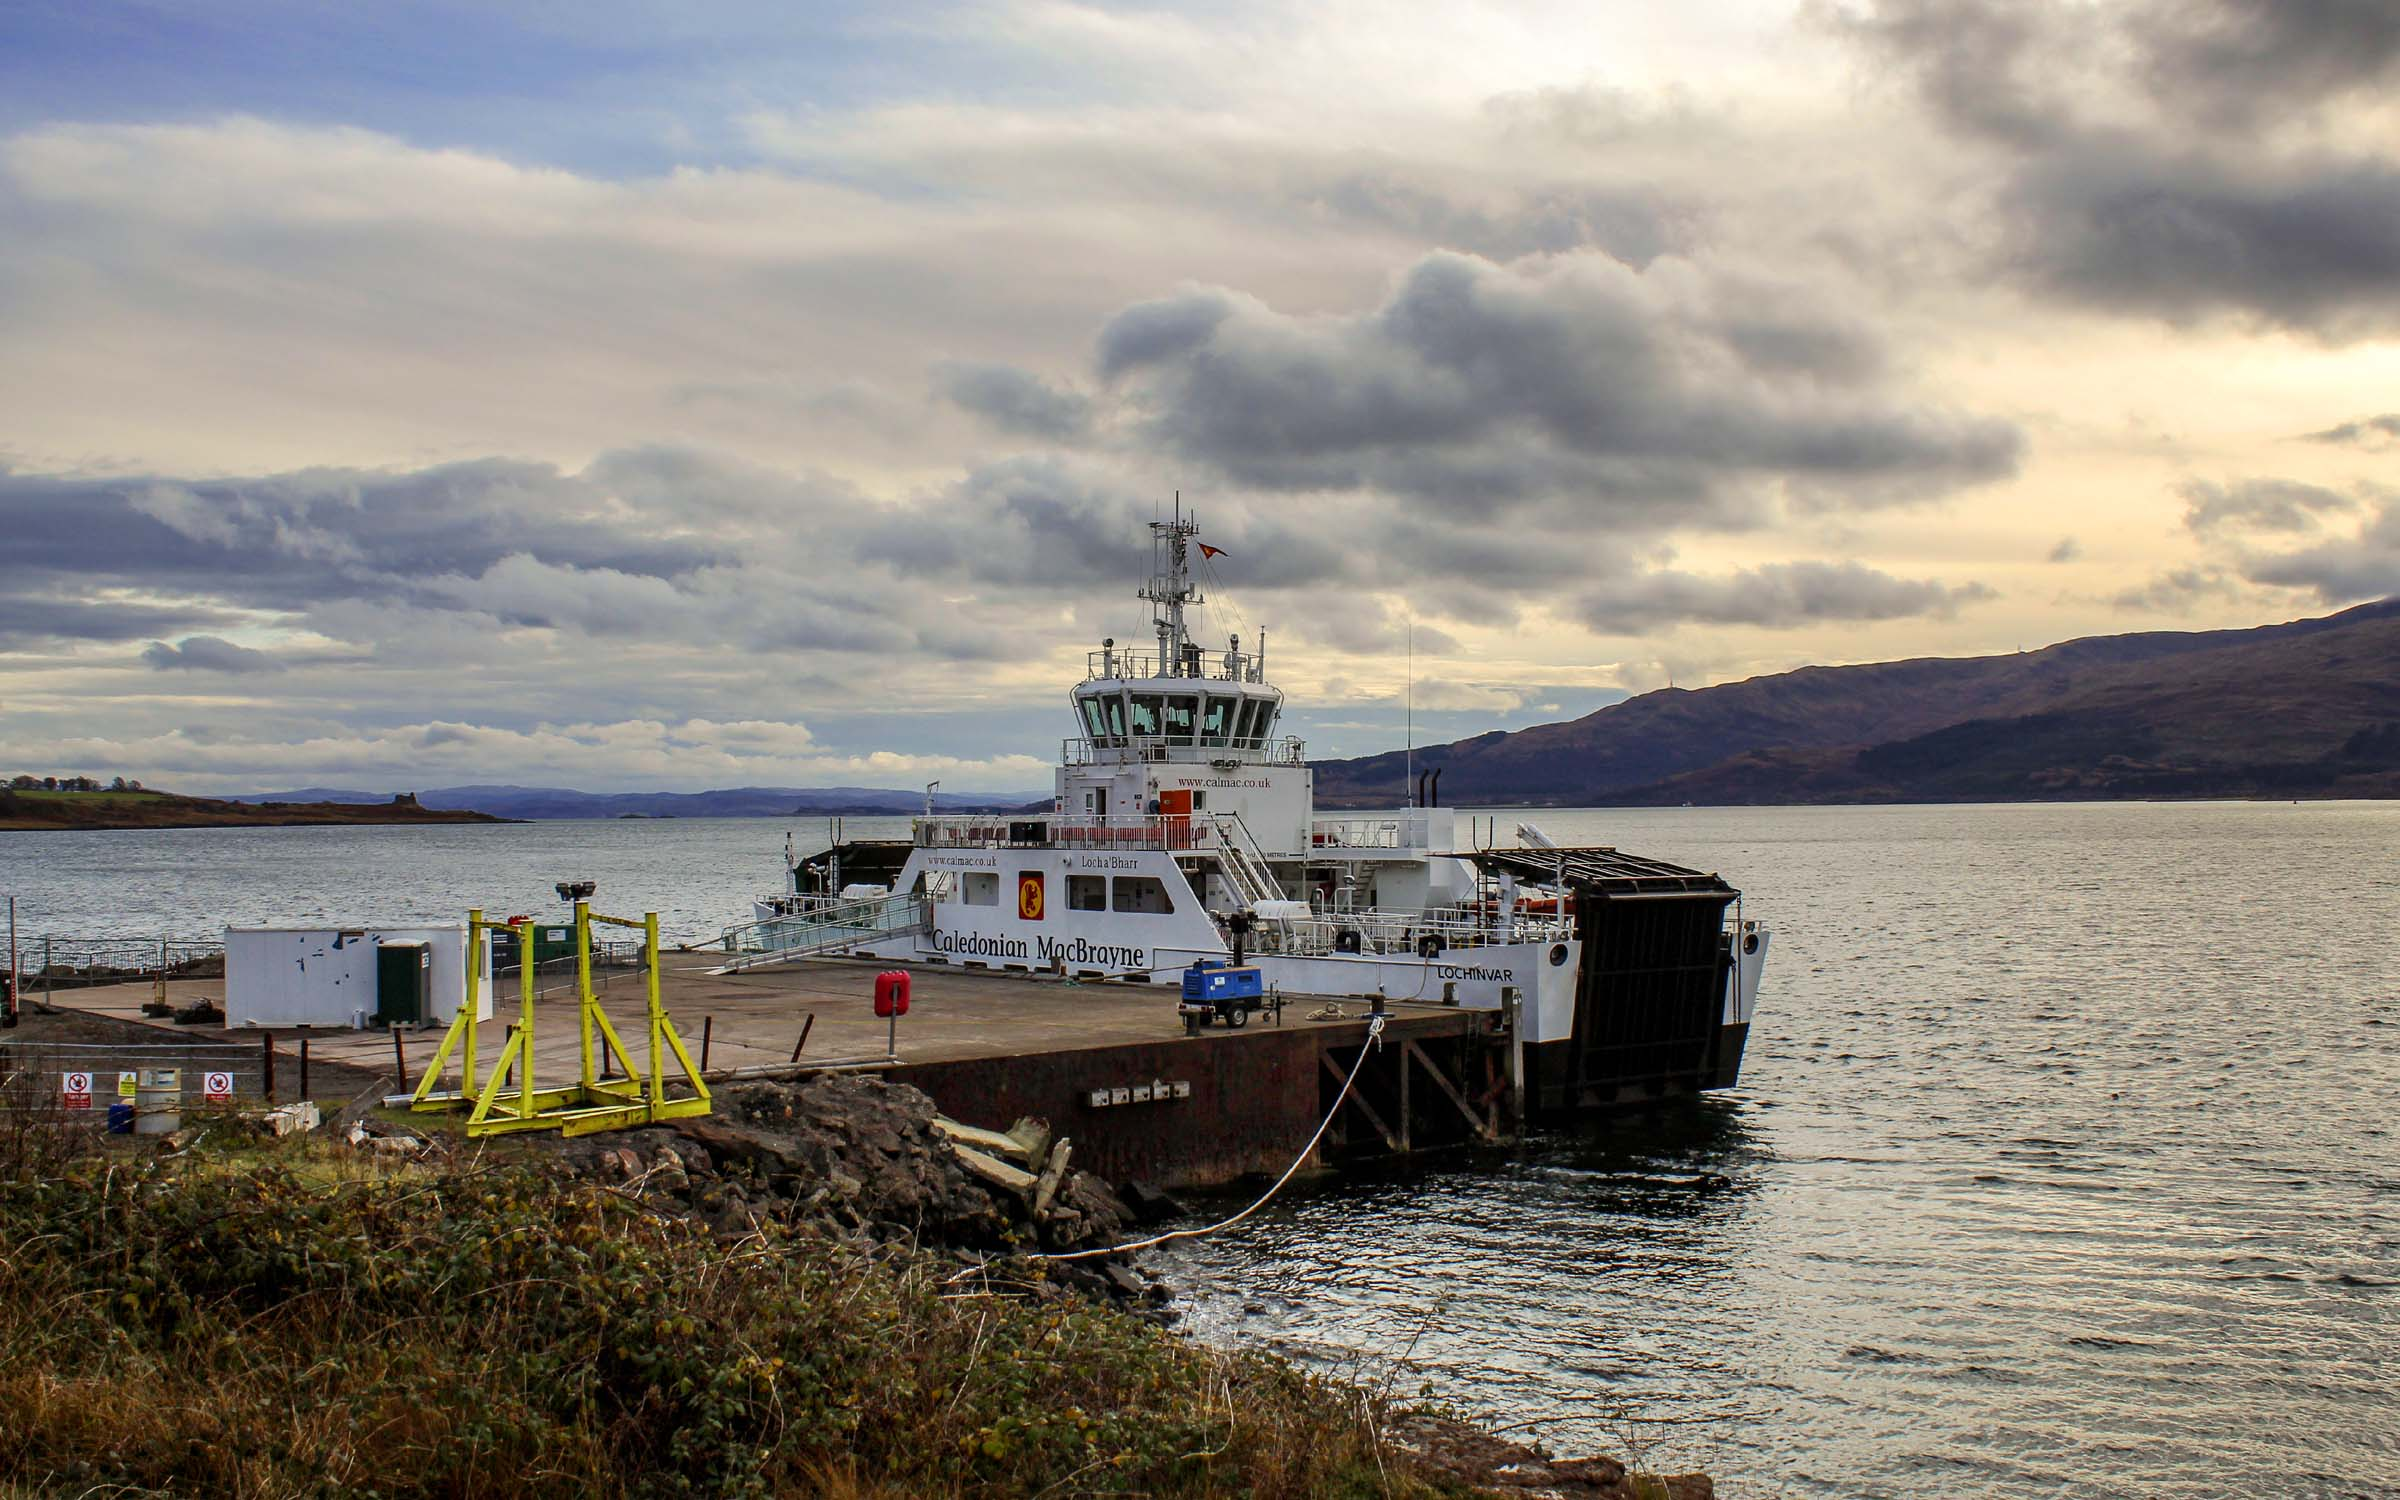 Lochinvar at Lochaline steamer pier (Ships of CalMac)